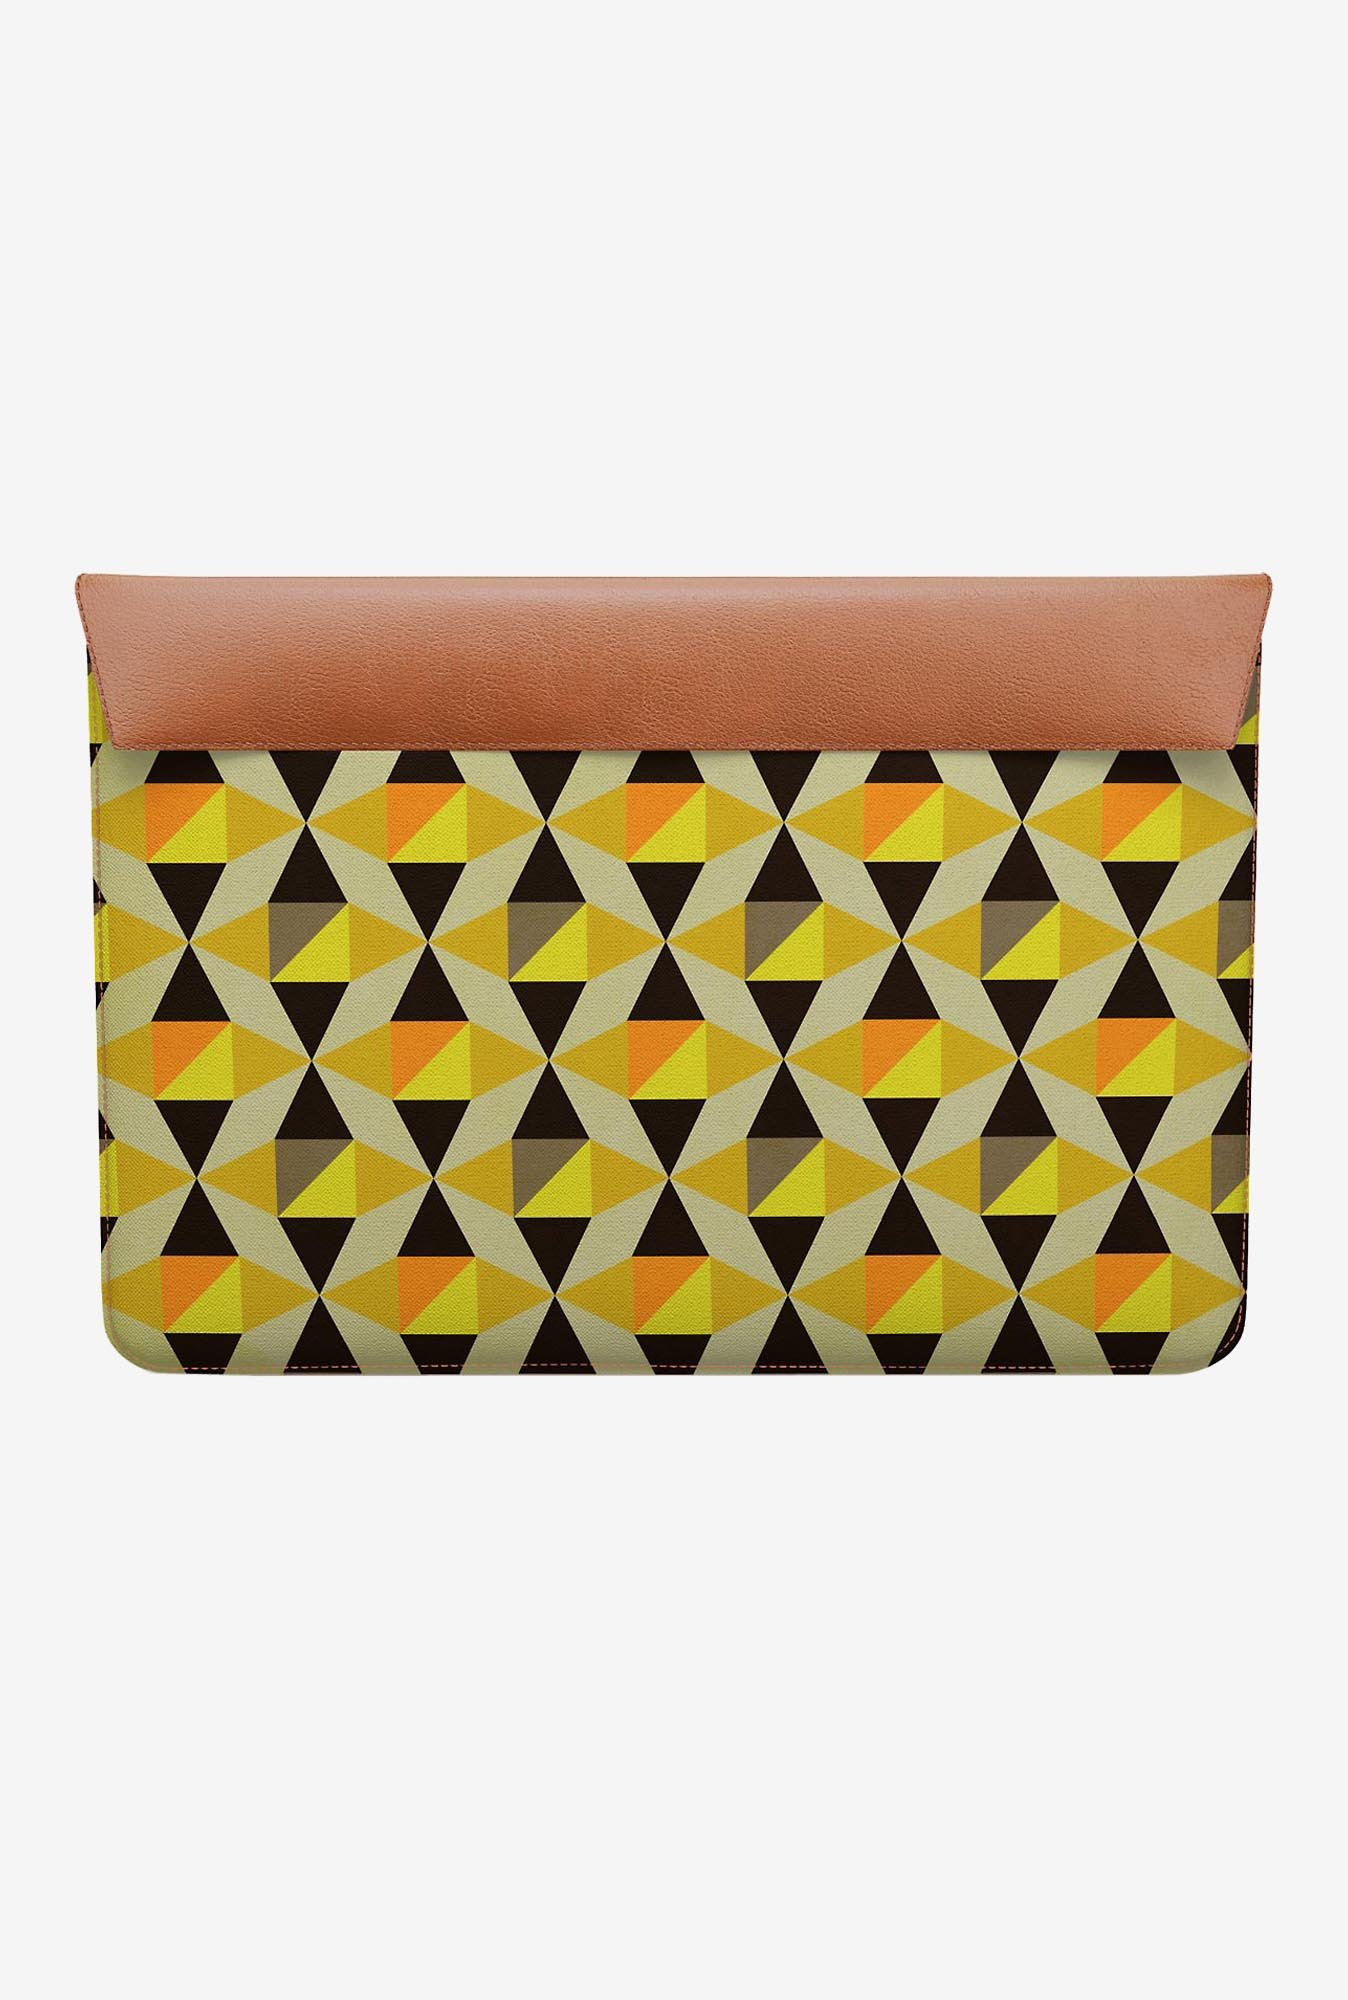 DailyObjects Onyx MacBook 12 Envelope Sleeve